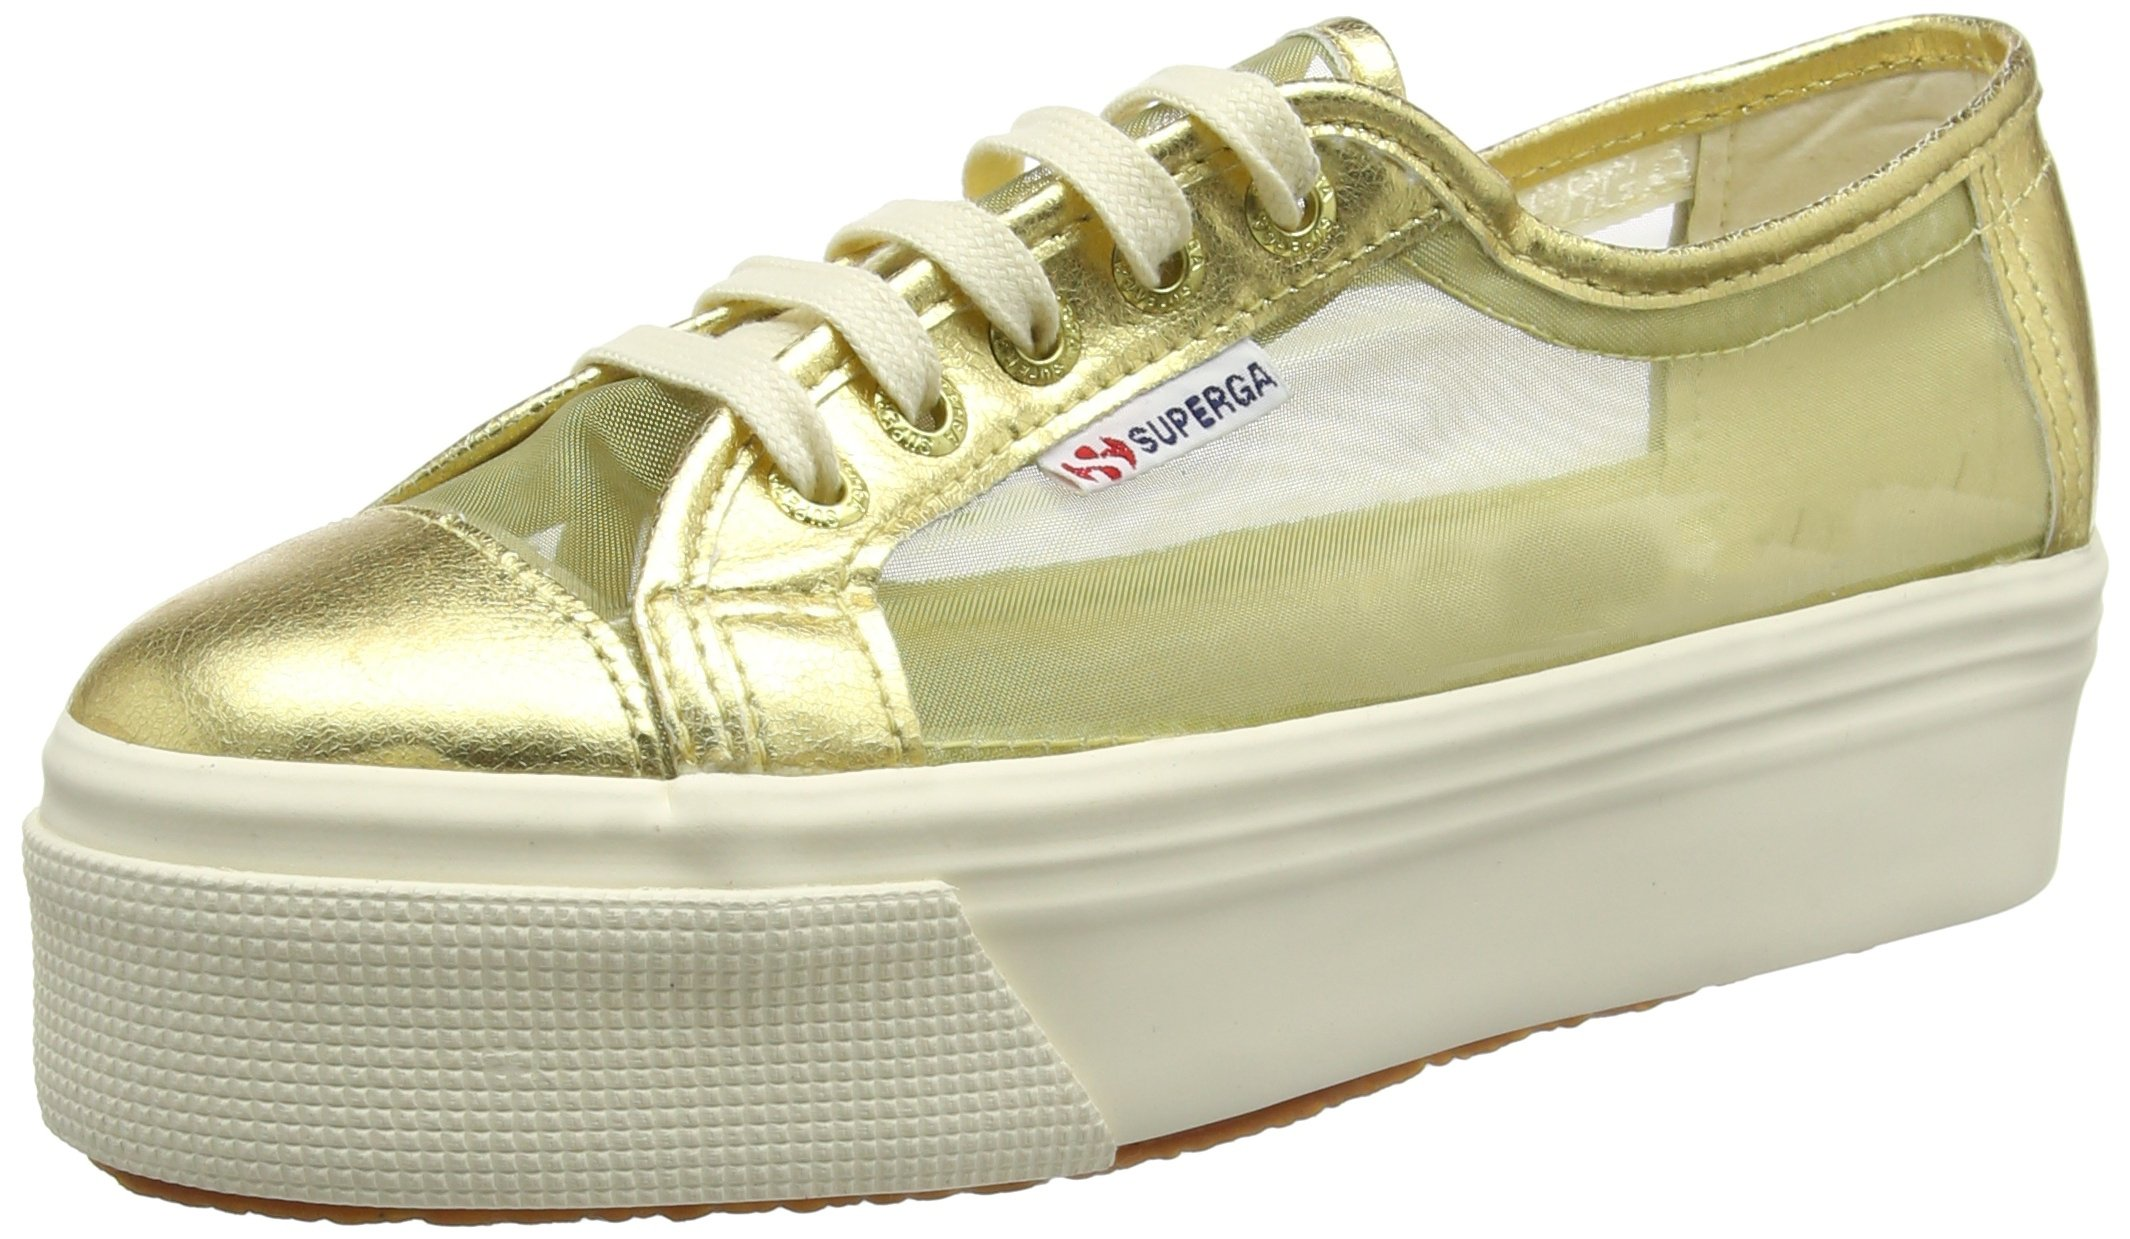 SUPERGA JB0 2790-NETW 174 ORANGE GOLD WOMEN'S SHOES SNEAKERS WEDGES, WEDGE HIGH, SPRING SUMMER NEW COLLECTION 2016 TEXTILE GOLD